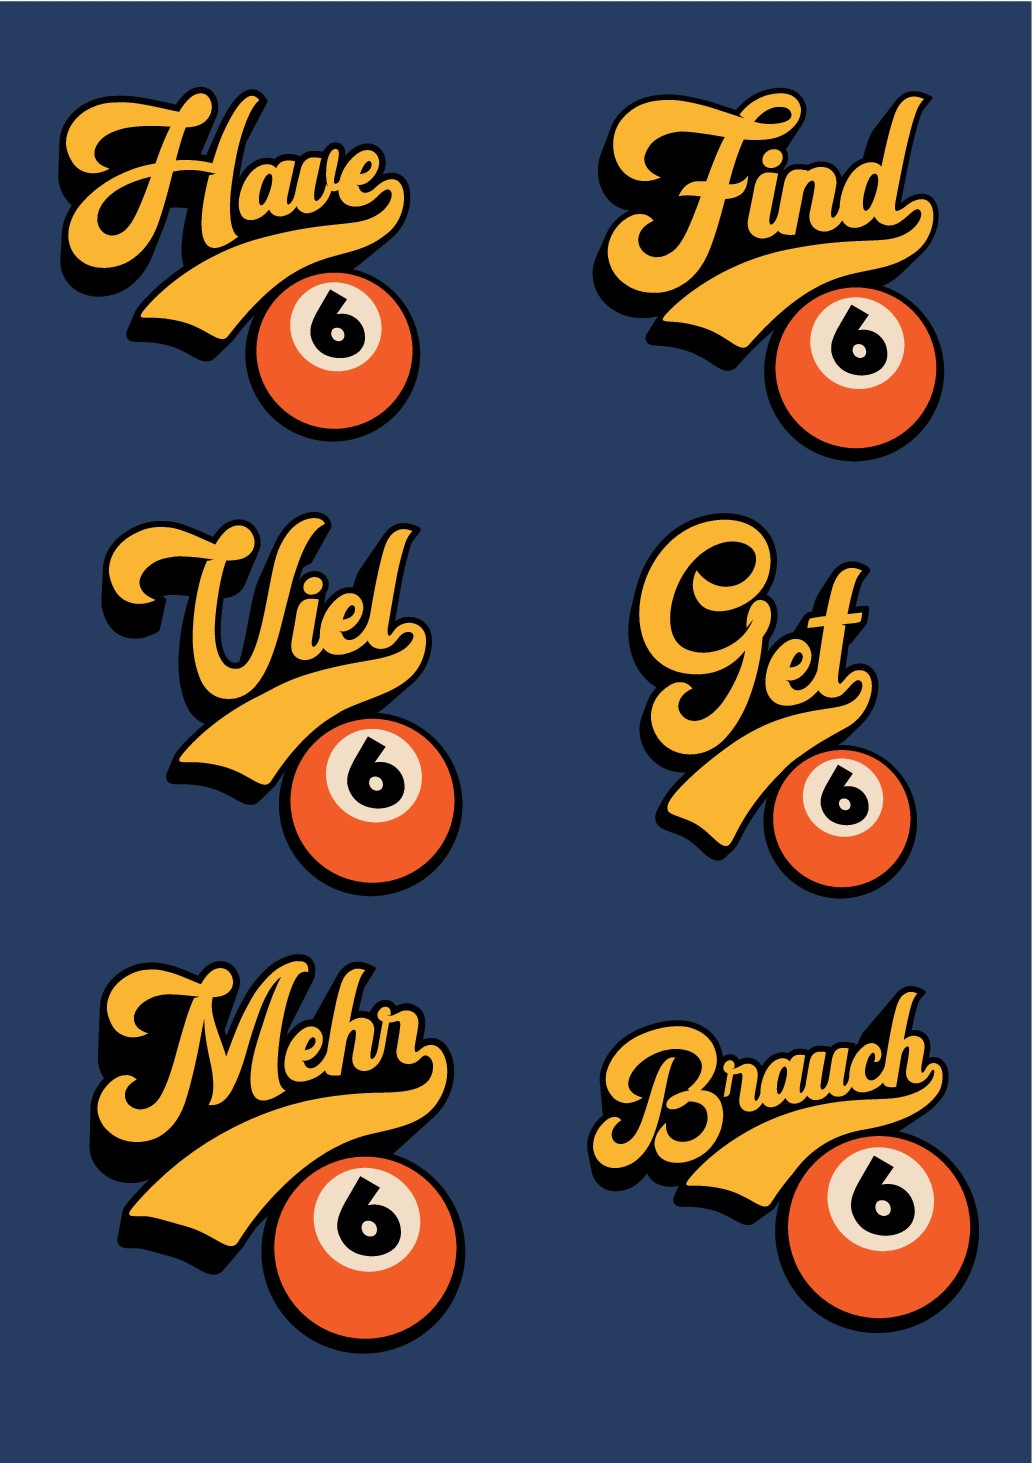 Brauch6: T-shirt for a new label - Brauch6